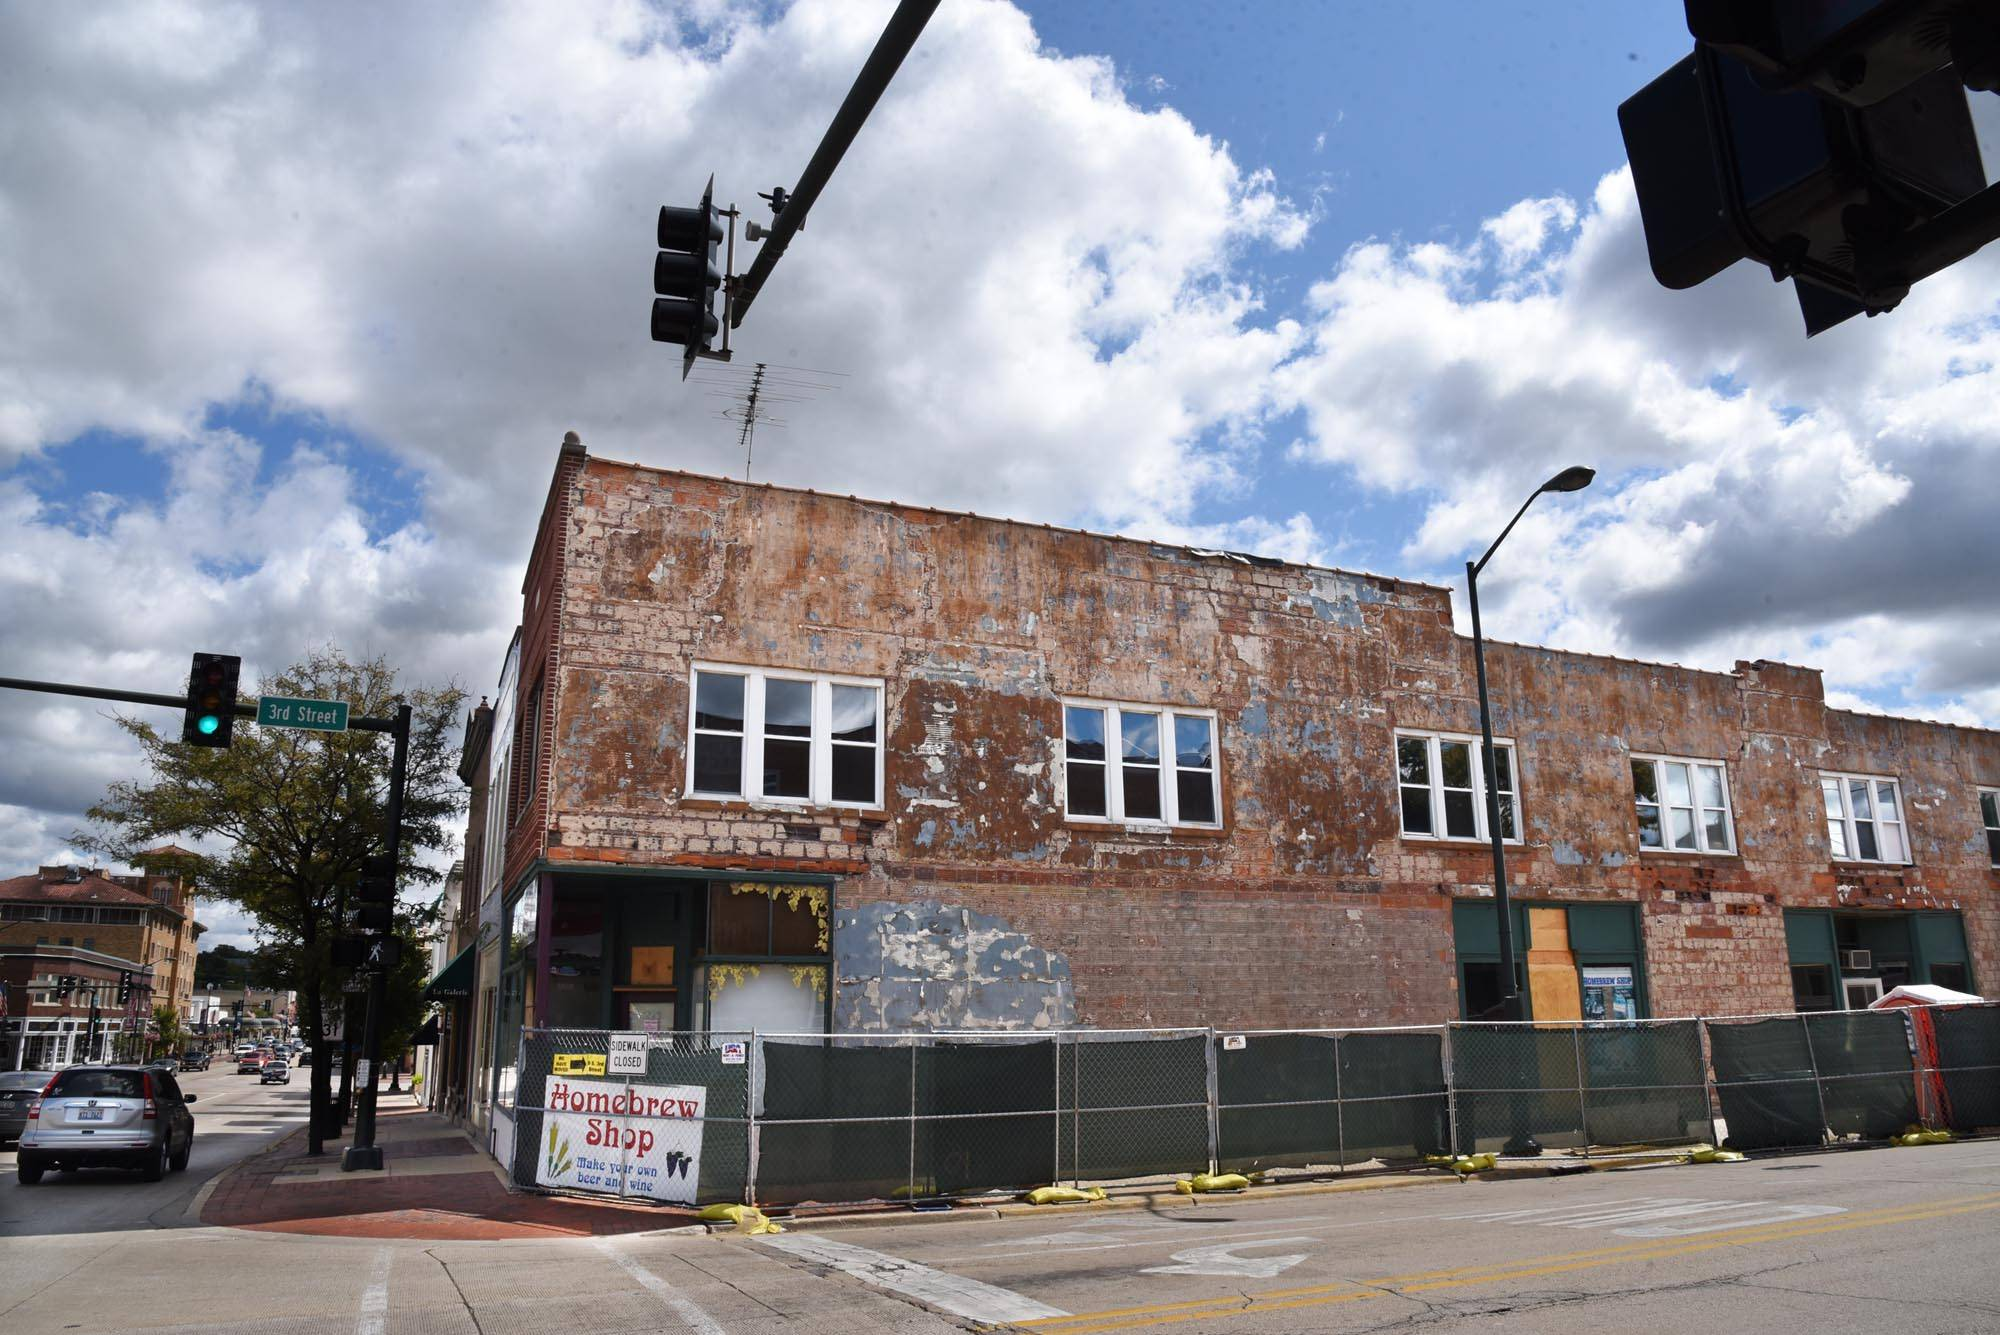 Work is being done on The Home Brew Shop at Third and Main streets in downtown St. Charles.